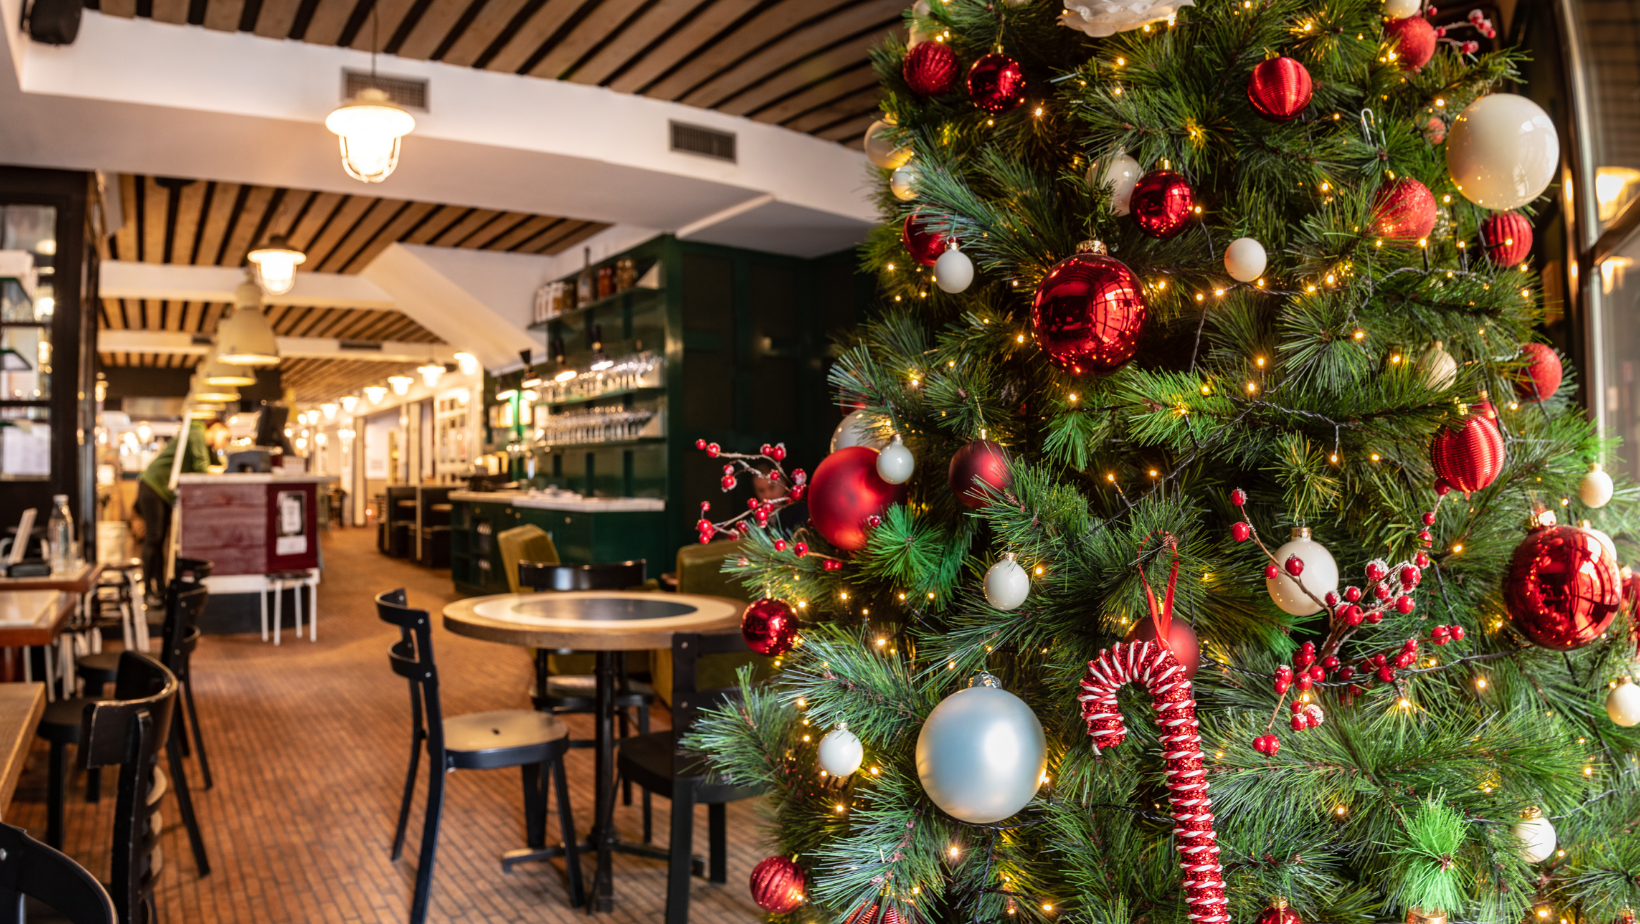 6 Food Safety Tips for the Holidays for Restaurants and Party Throwers